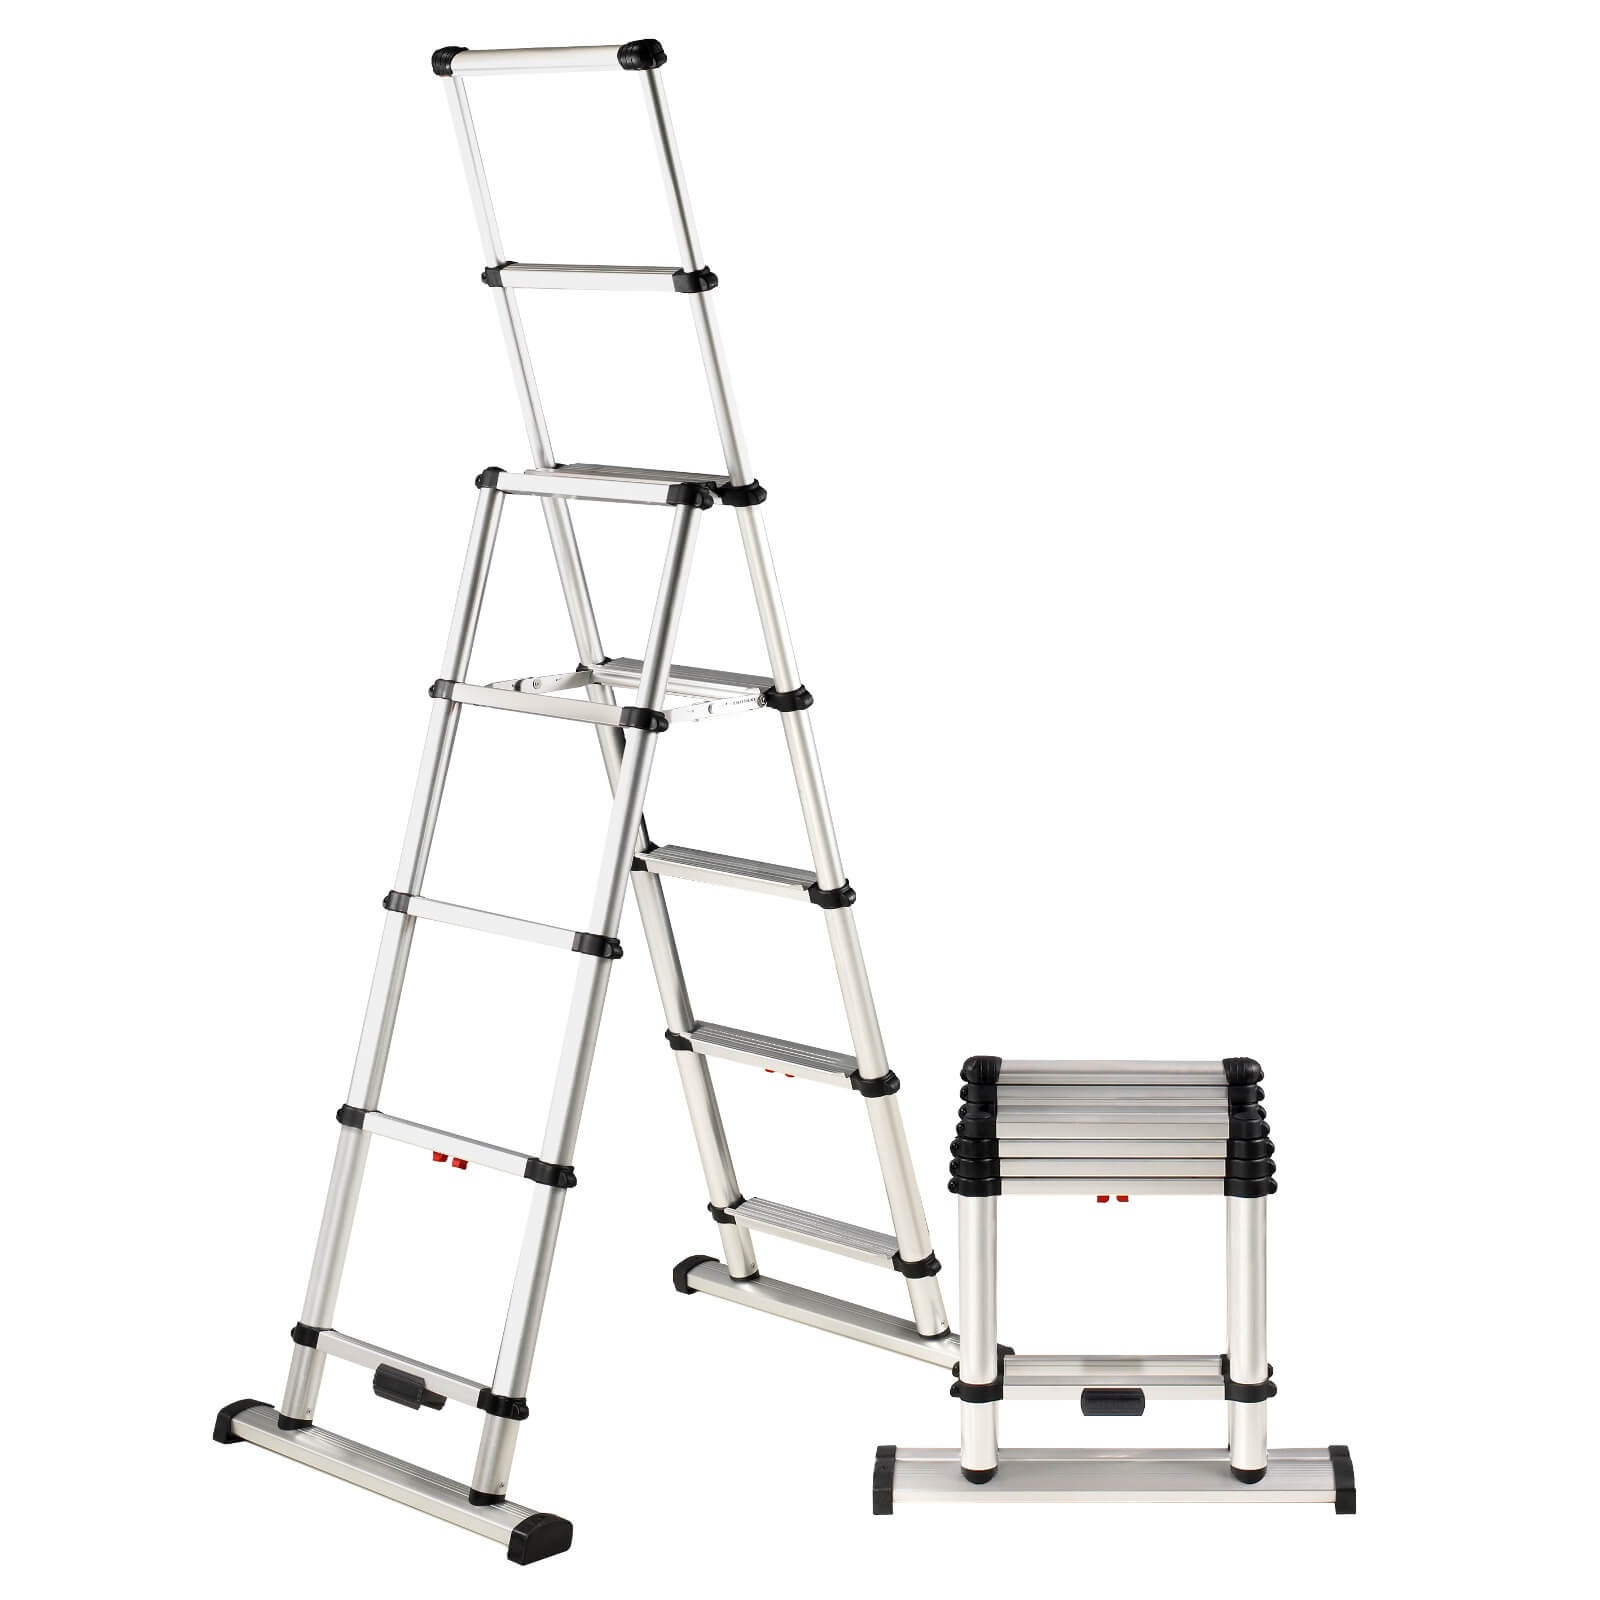 Telesteps Telescoping Wide Step A-Frame Combi Ladder | eBay